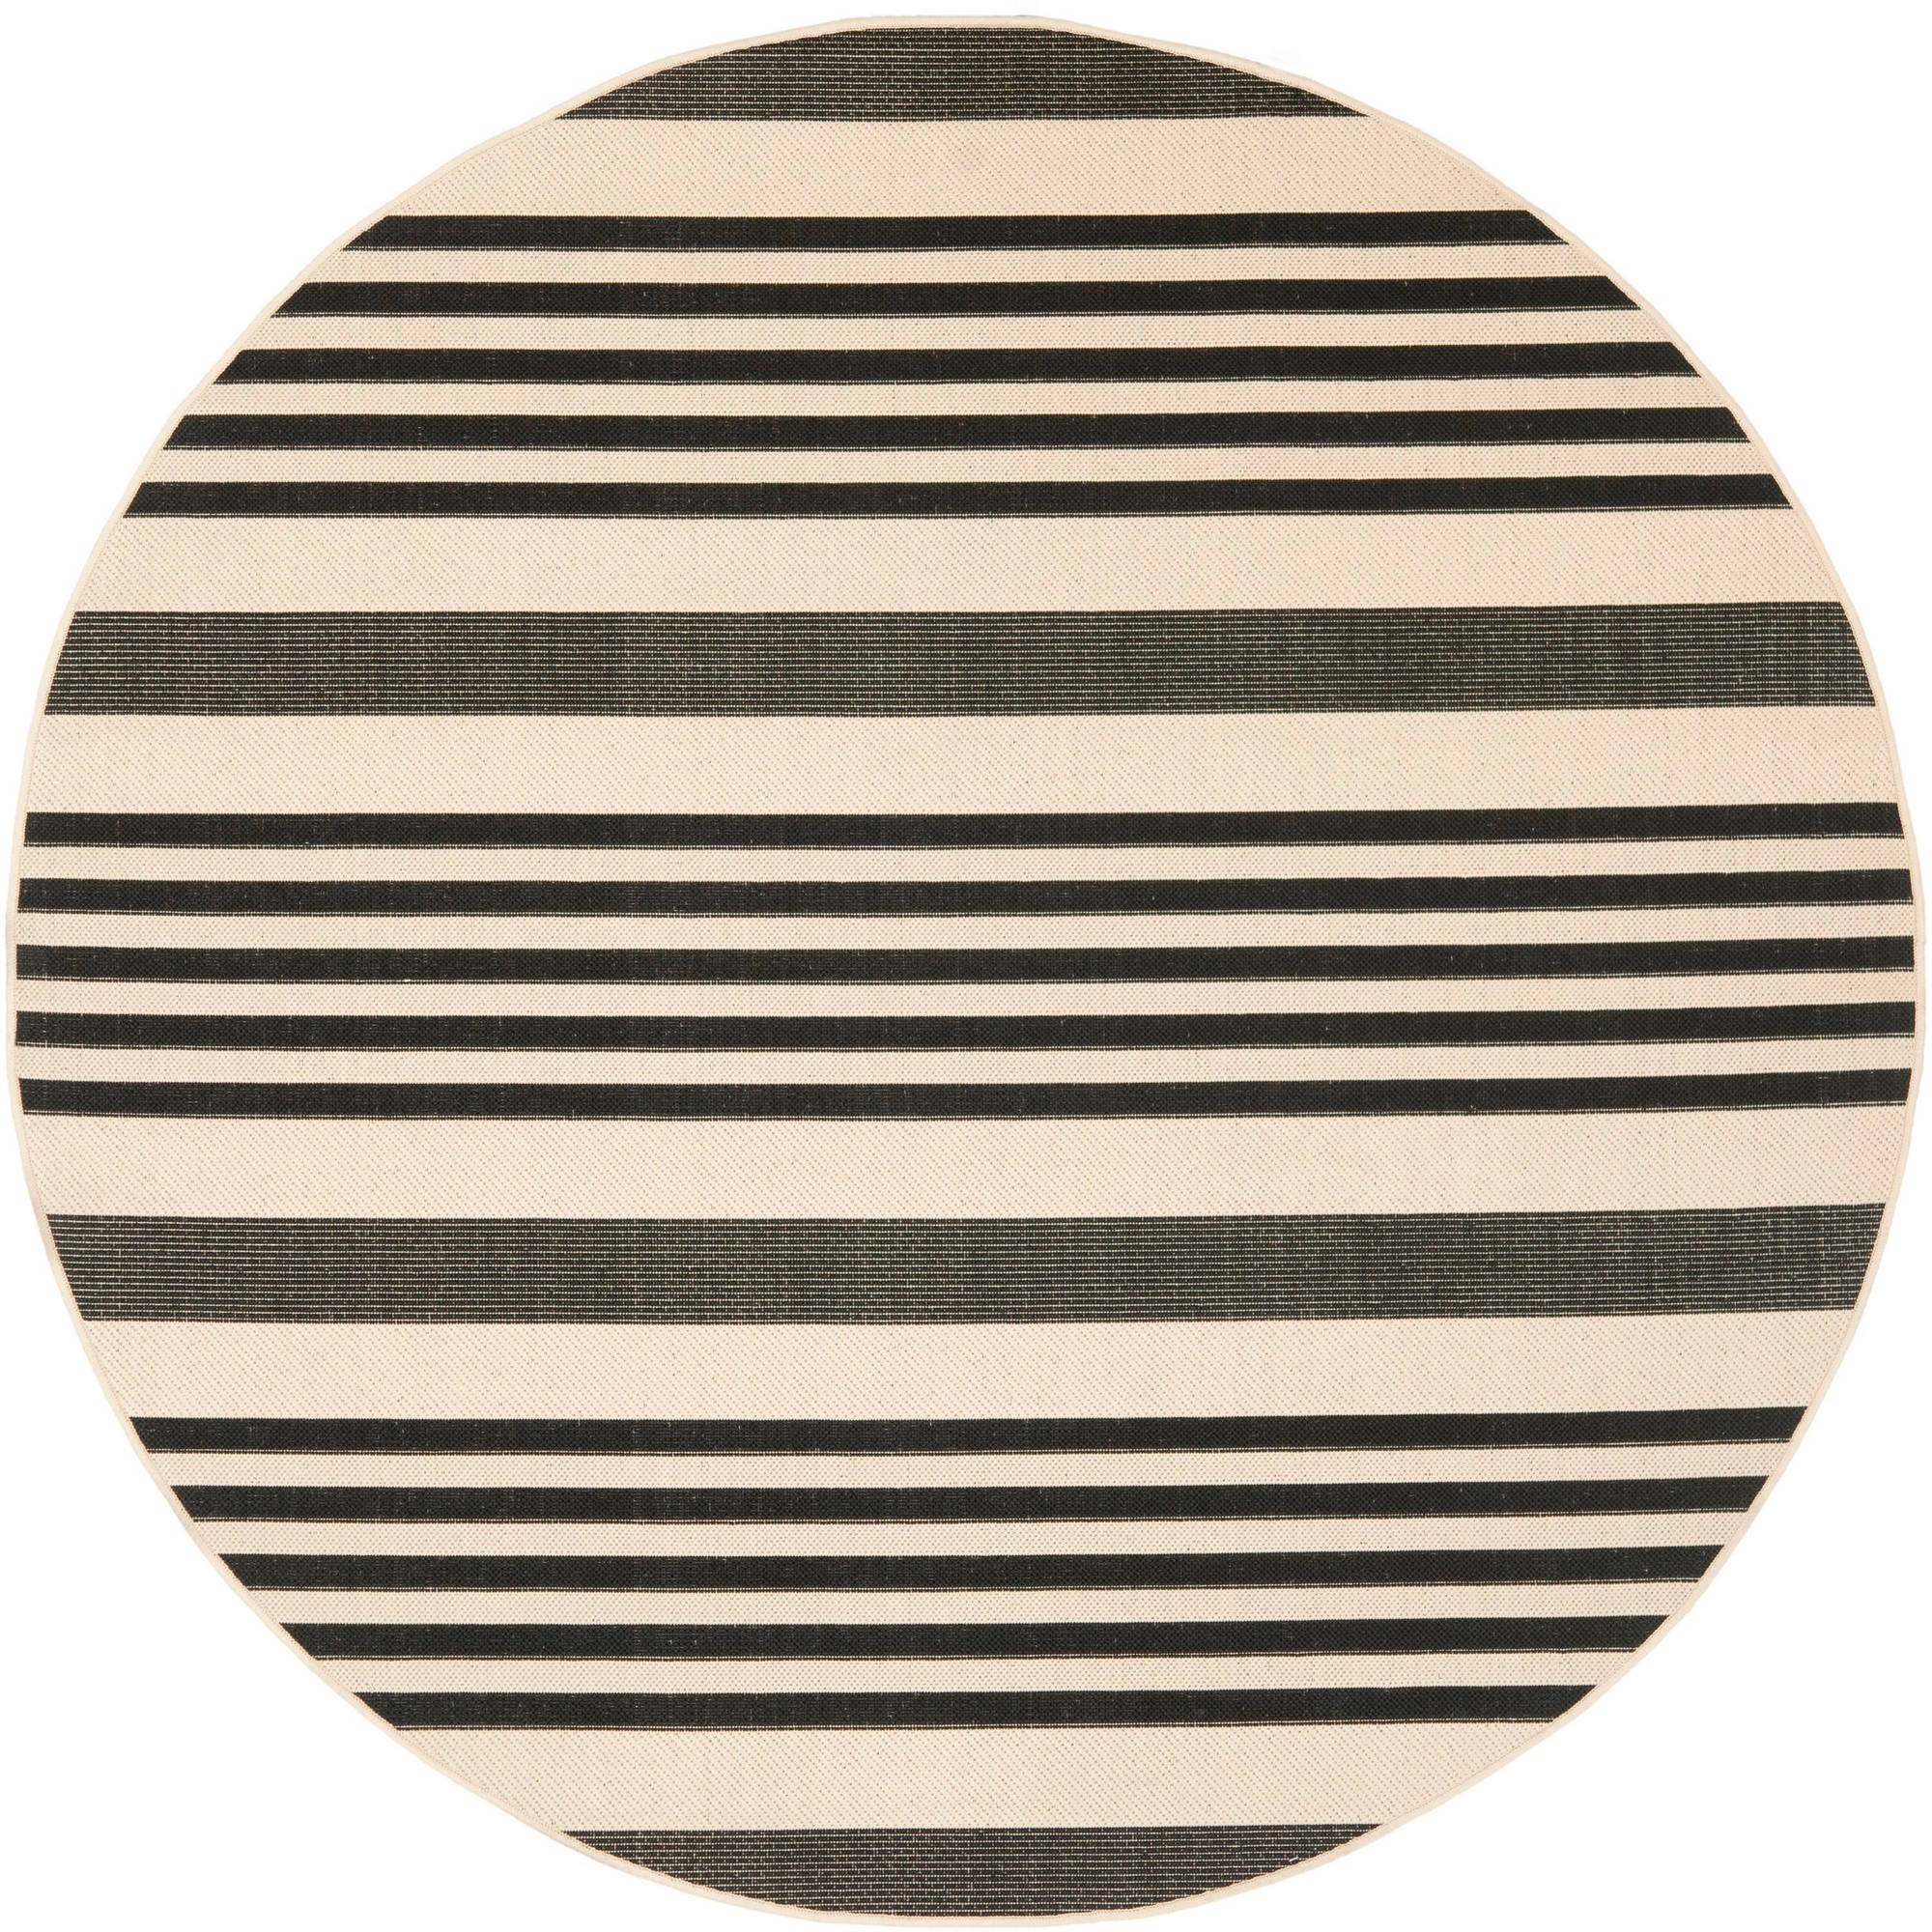 Safavieh Courtyard Carmen Power-Loomed Indoor/Outdoor Area Rug or Runner